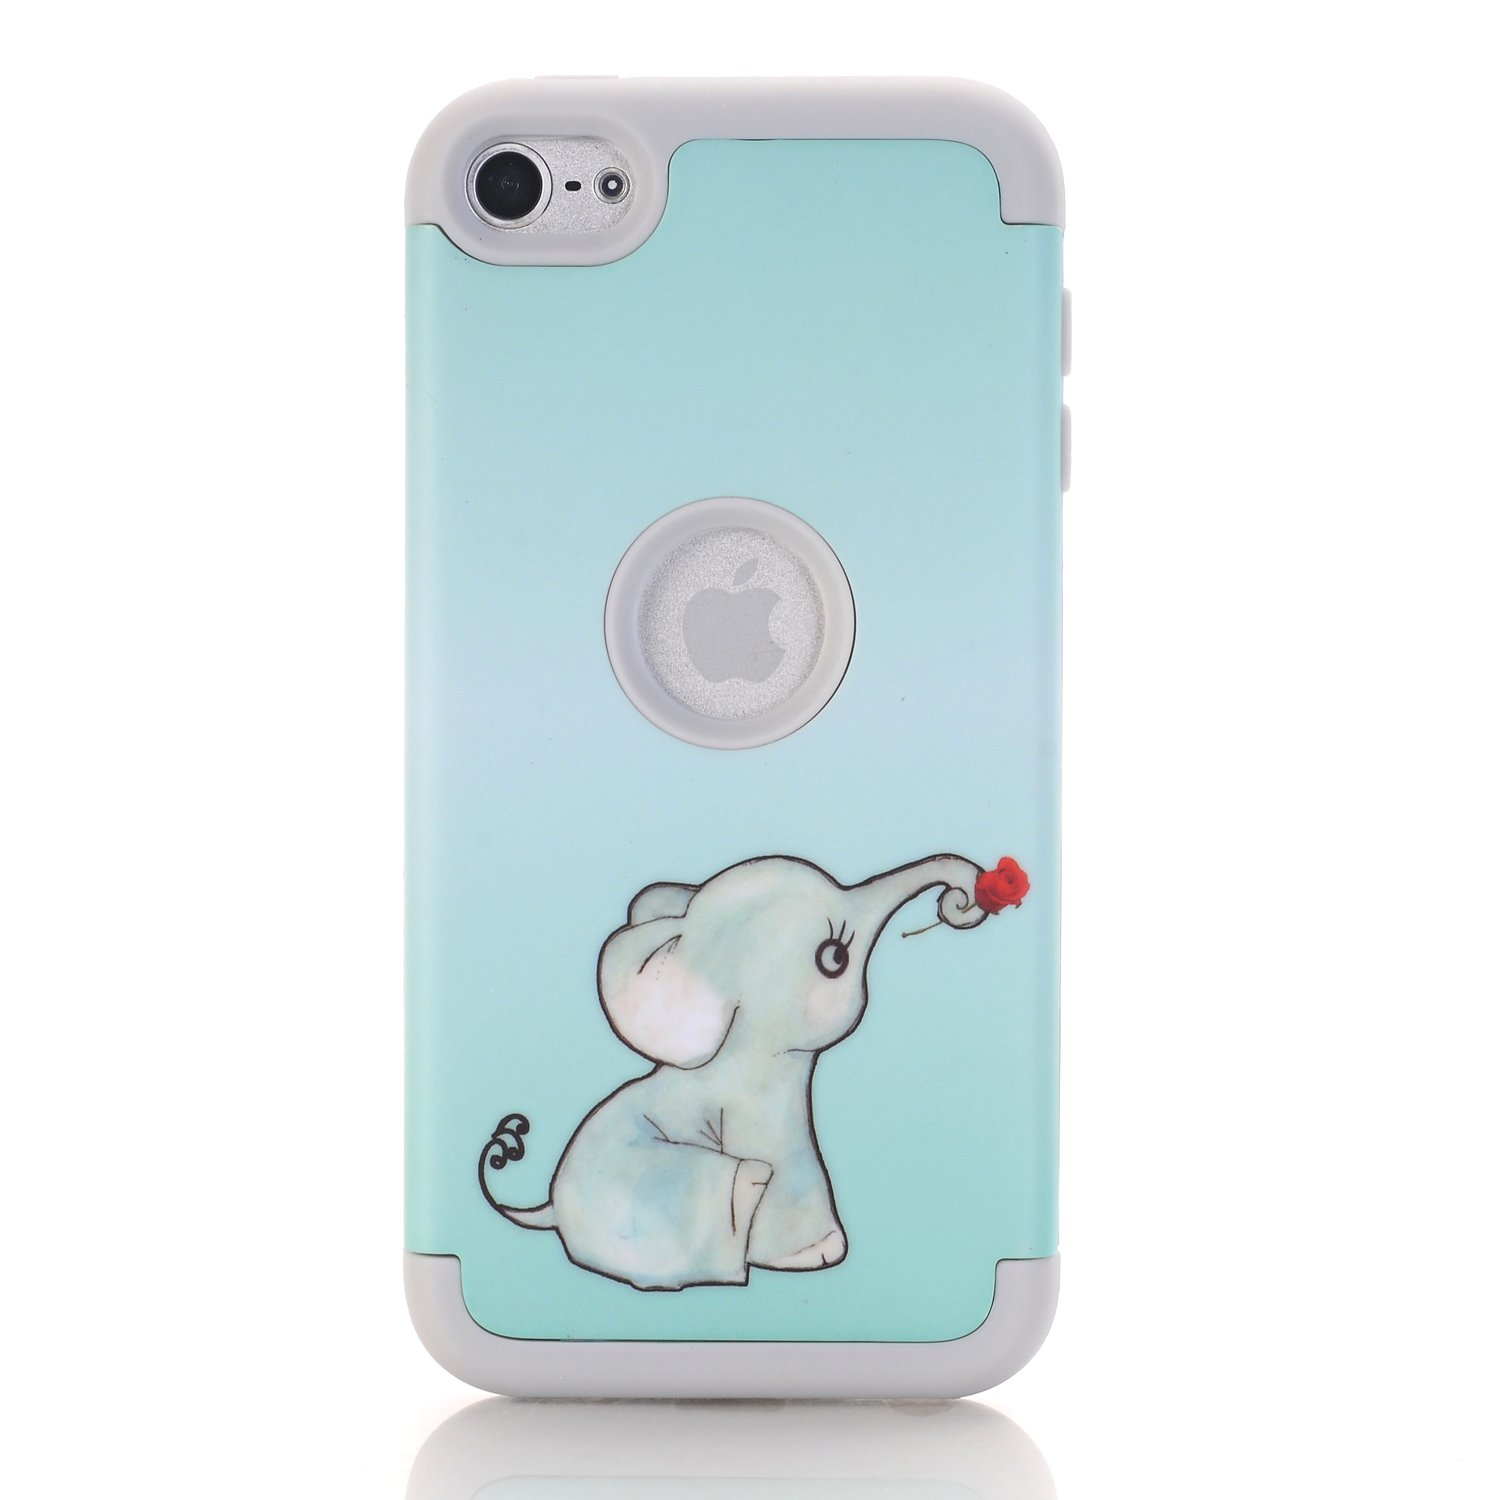 ,with Screen Protector and Stylus TM Elephant Pattern Black Rosepark iPod Touch 5 case,iPod Touch 6 Case, 3 Pieces Style Hybrid Shockproof Hard Case Cover for Apple iPod Touch 5 6th Generation